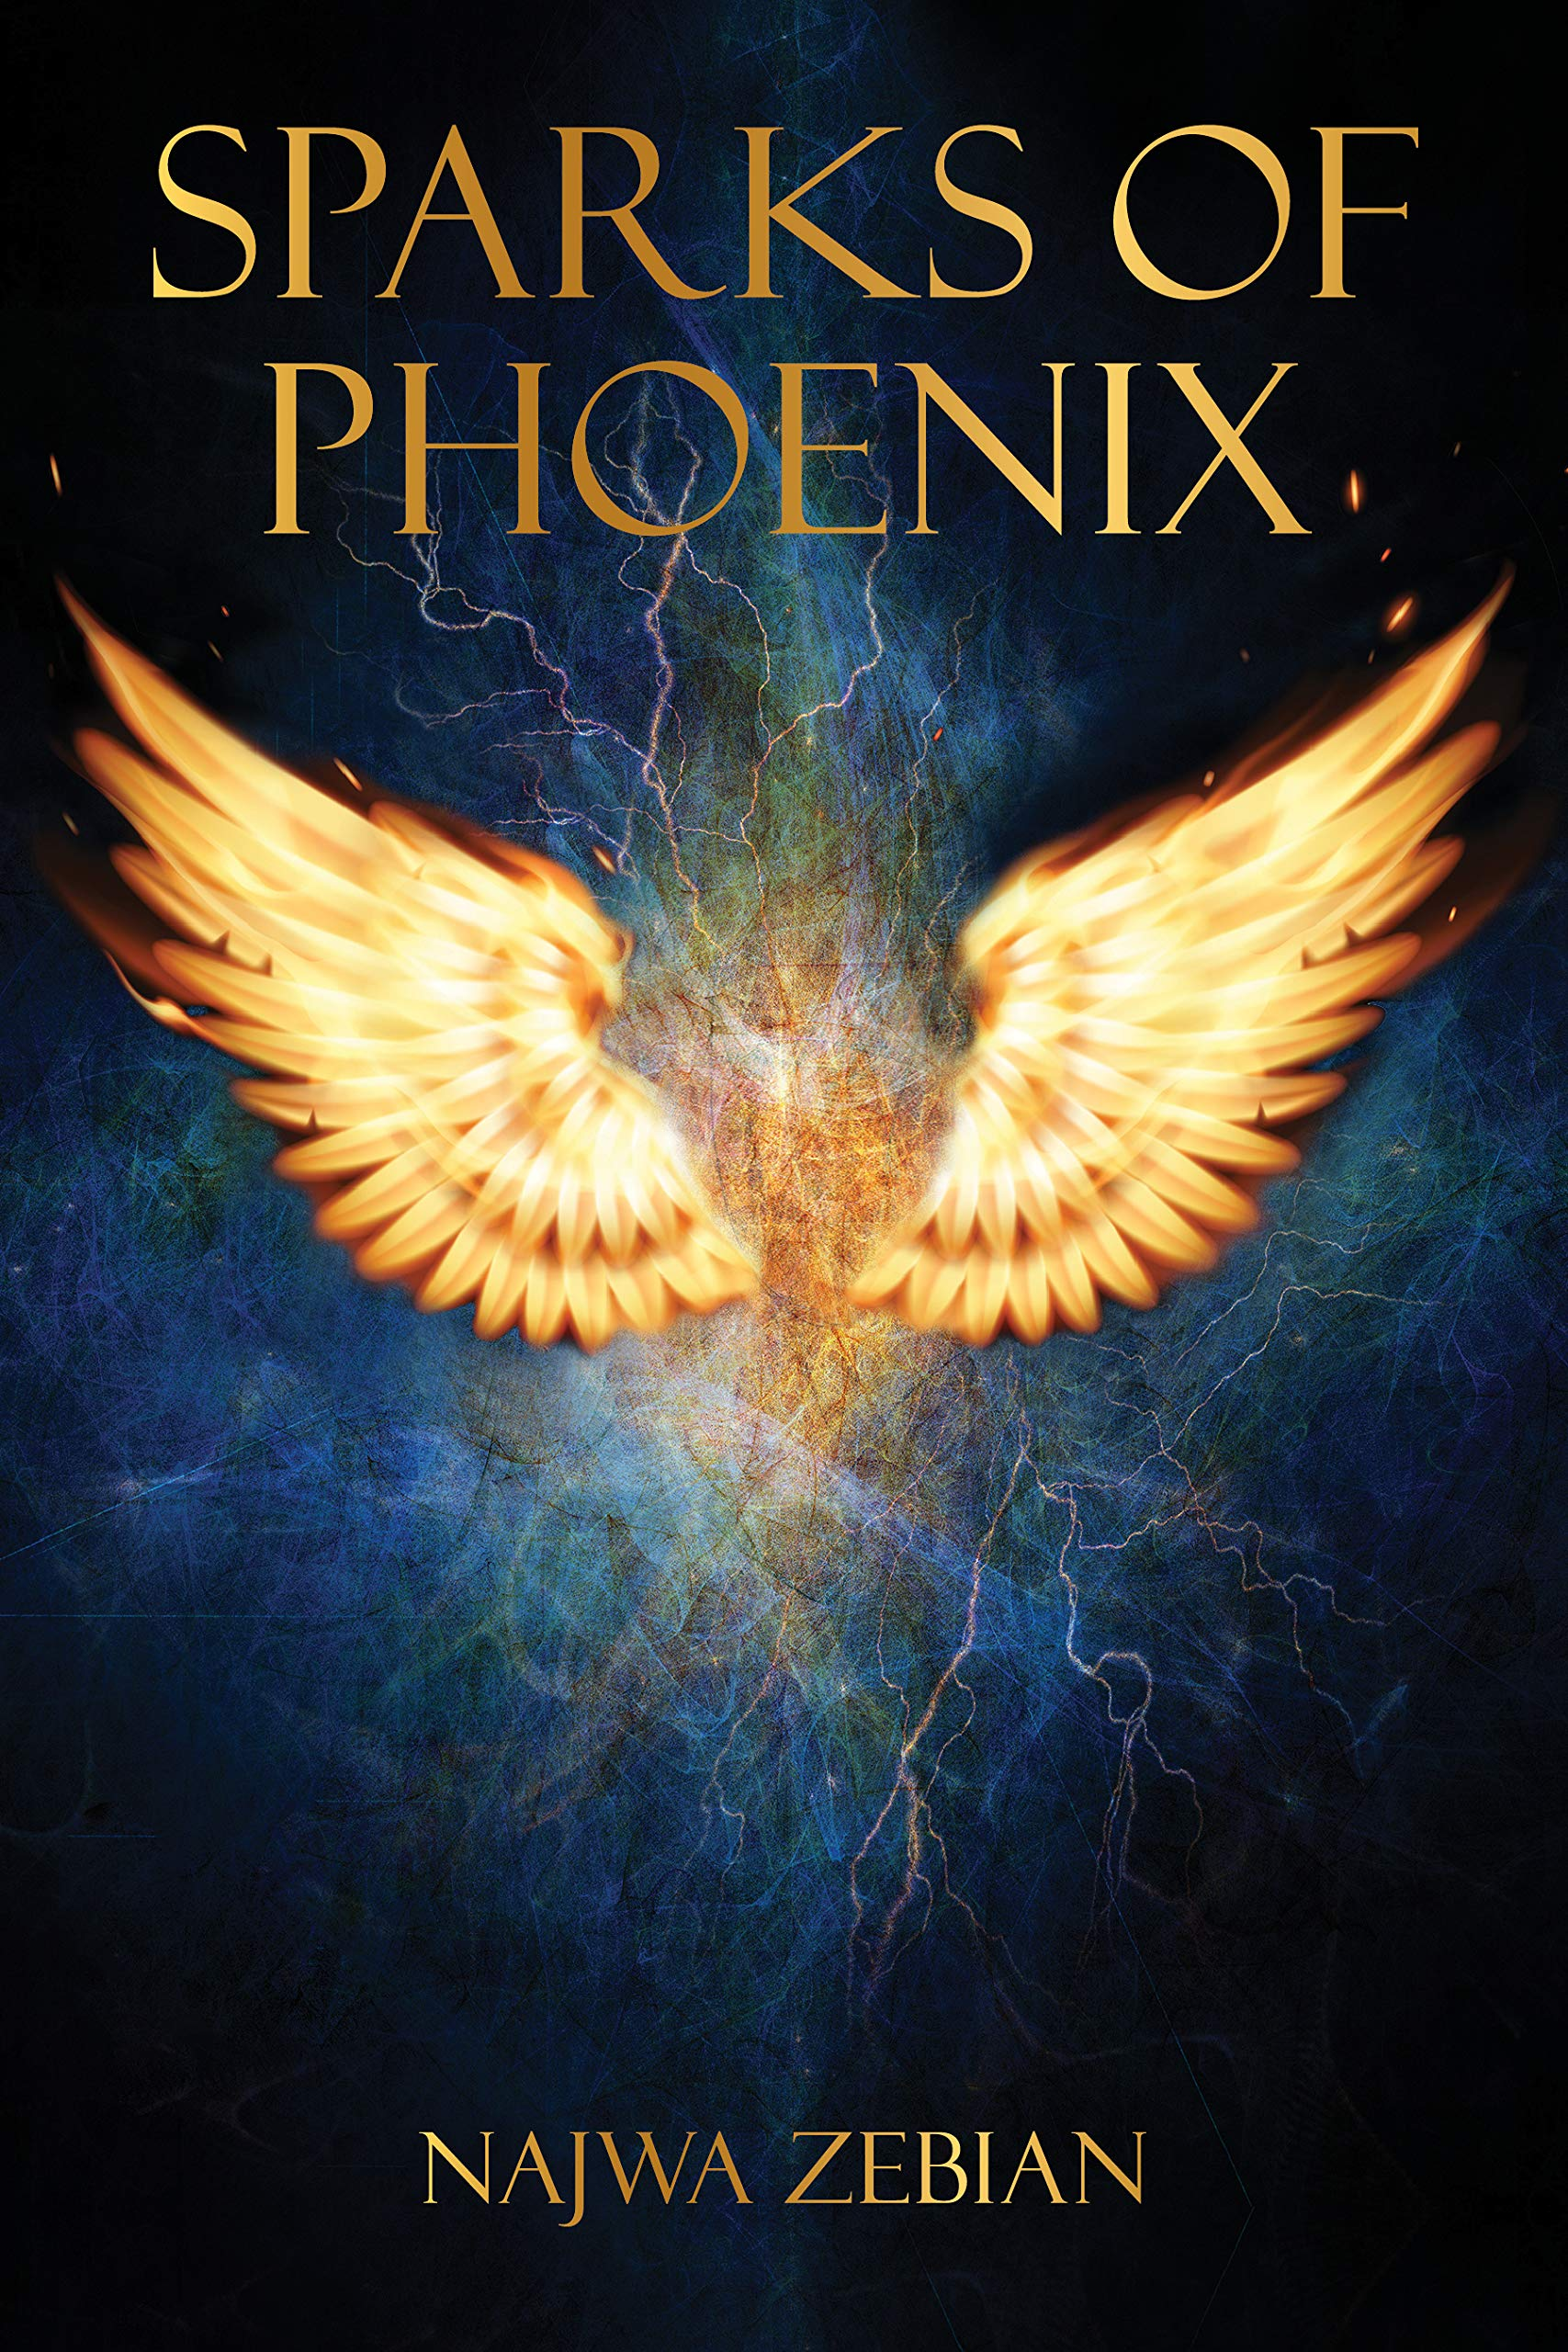 The cover of Sparks of Phoenix, a mostly smoky blue graphic with golden text and a lighter gold image of a phoenix.